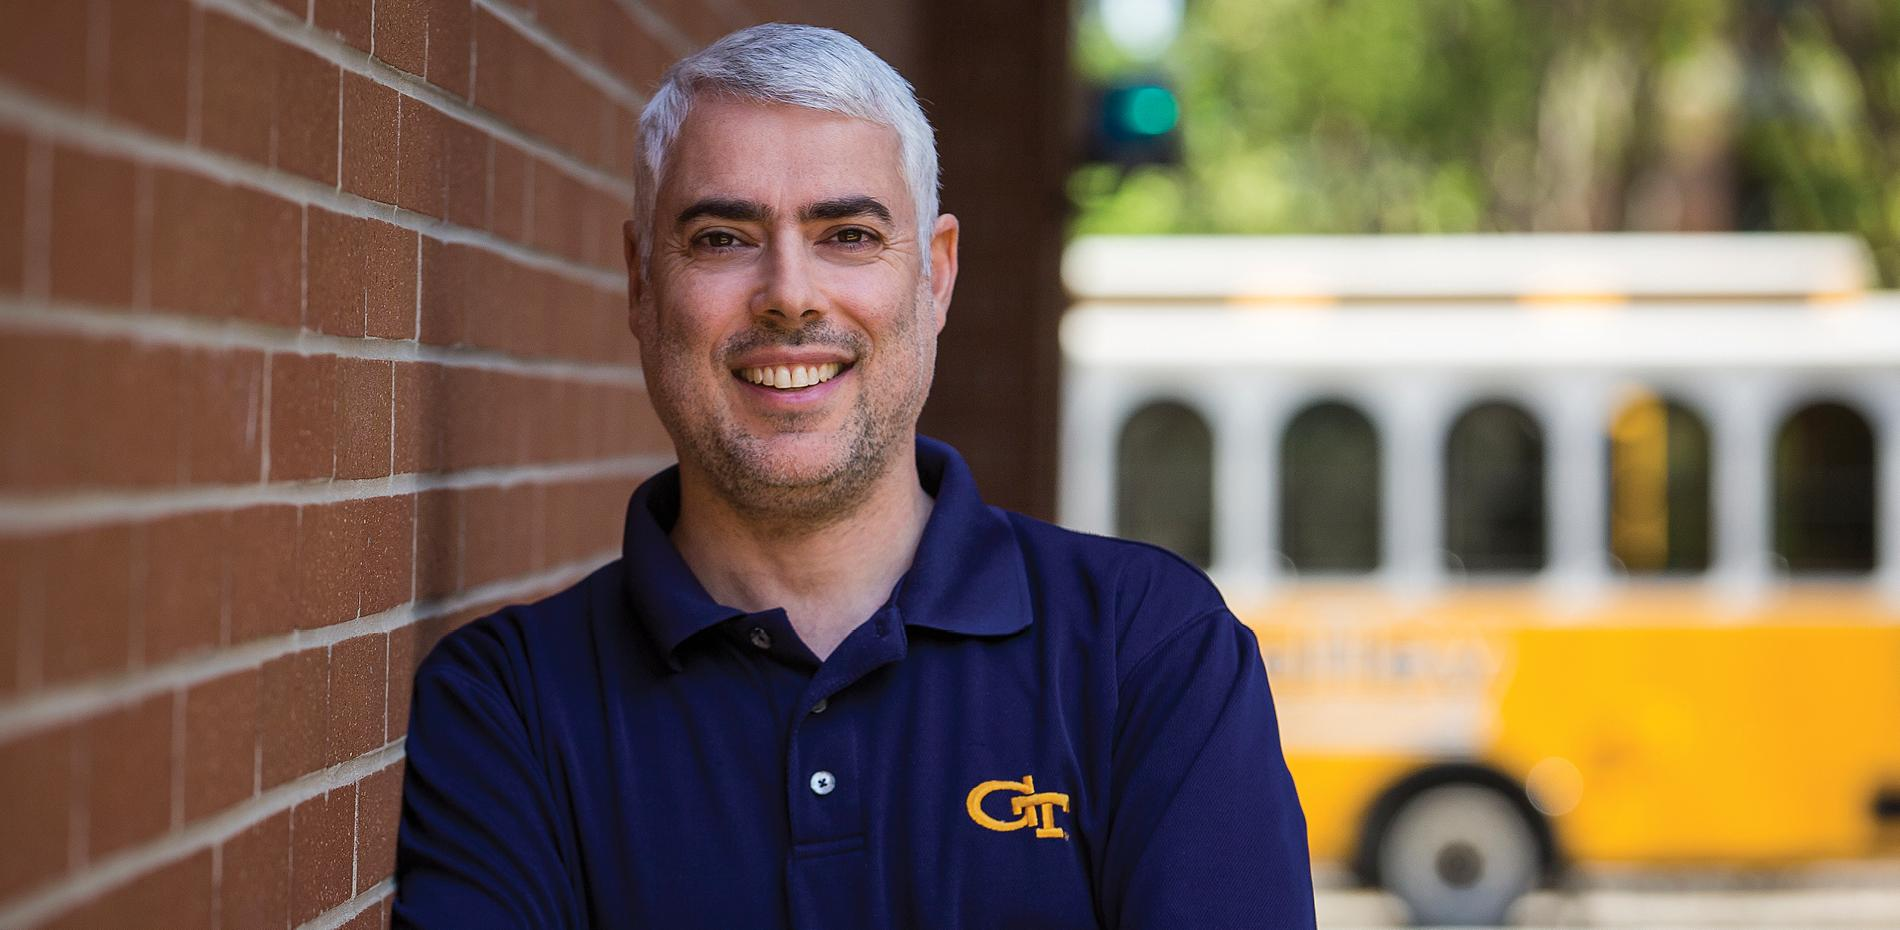 Joel Sokol smiles while he leans against a brick wall. The Georgia Tech Trolley passes in background.